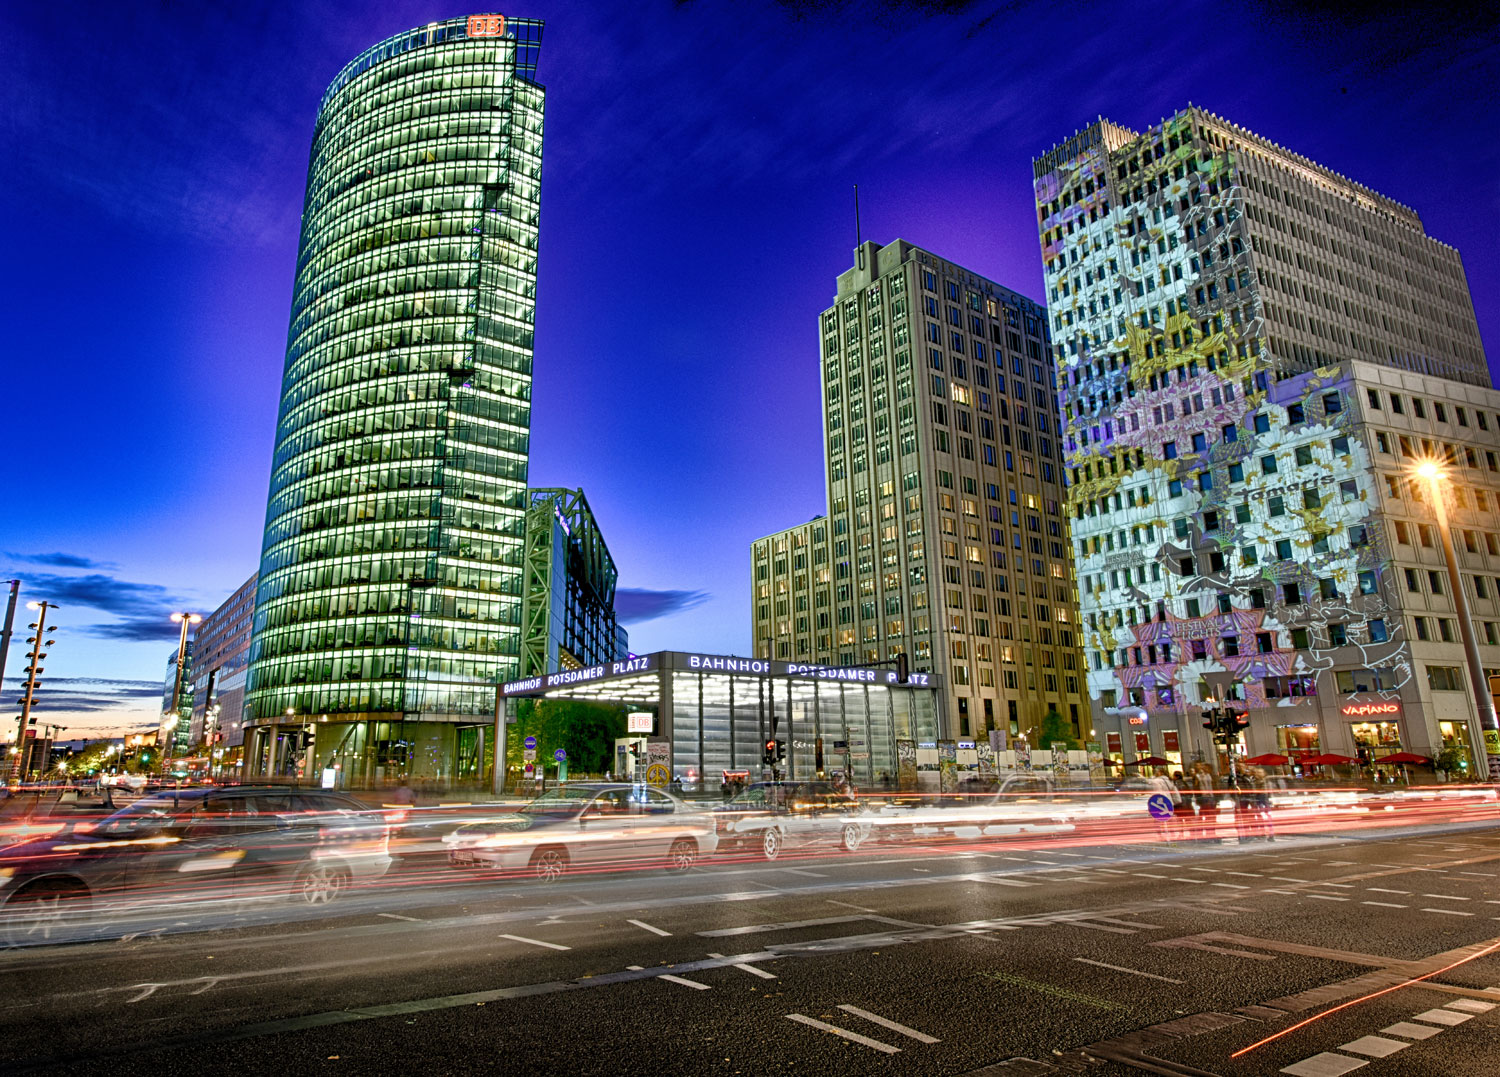 Ritz Carlton Berlin am Potsdamer Platz